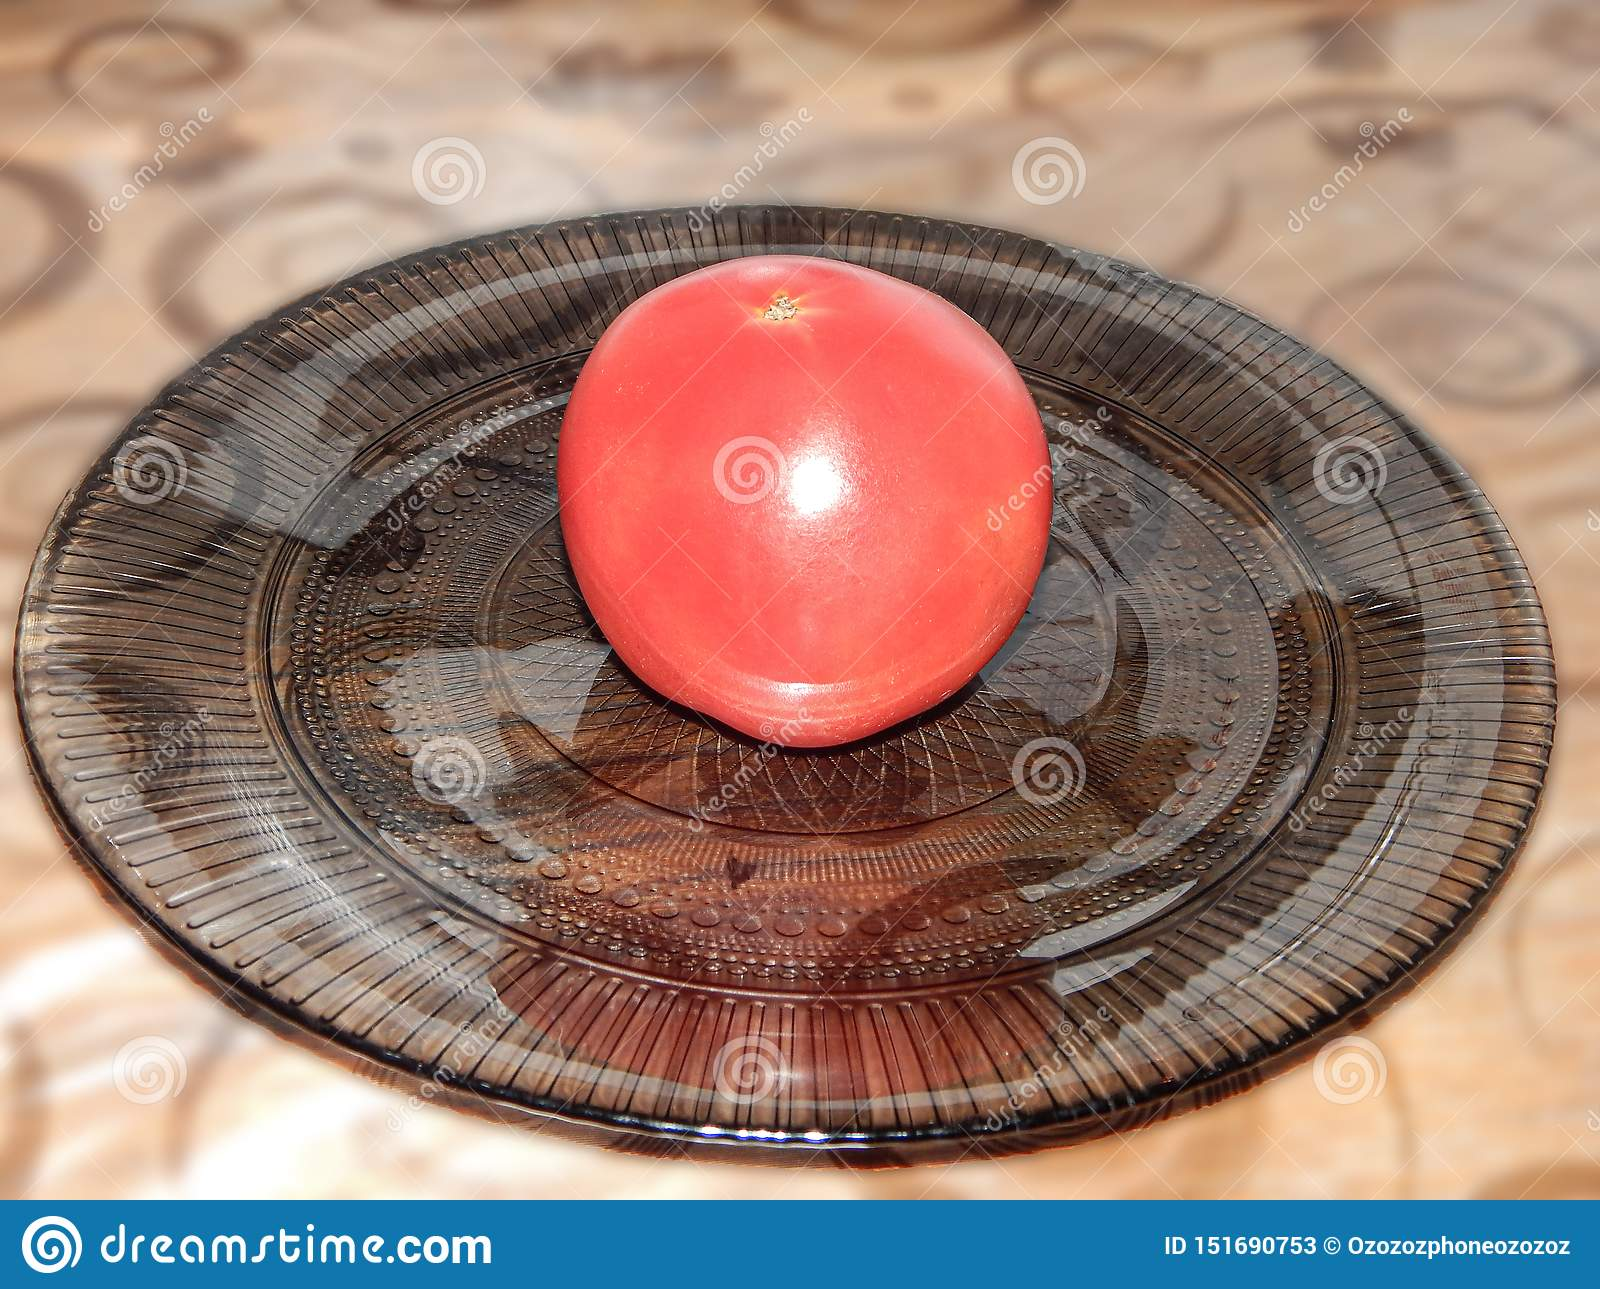 Red tomato on a plate on the table